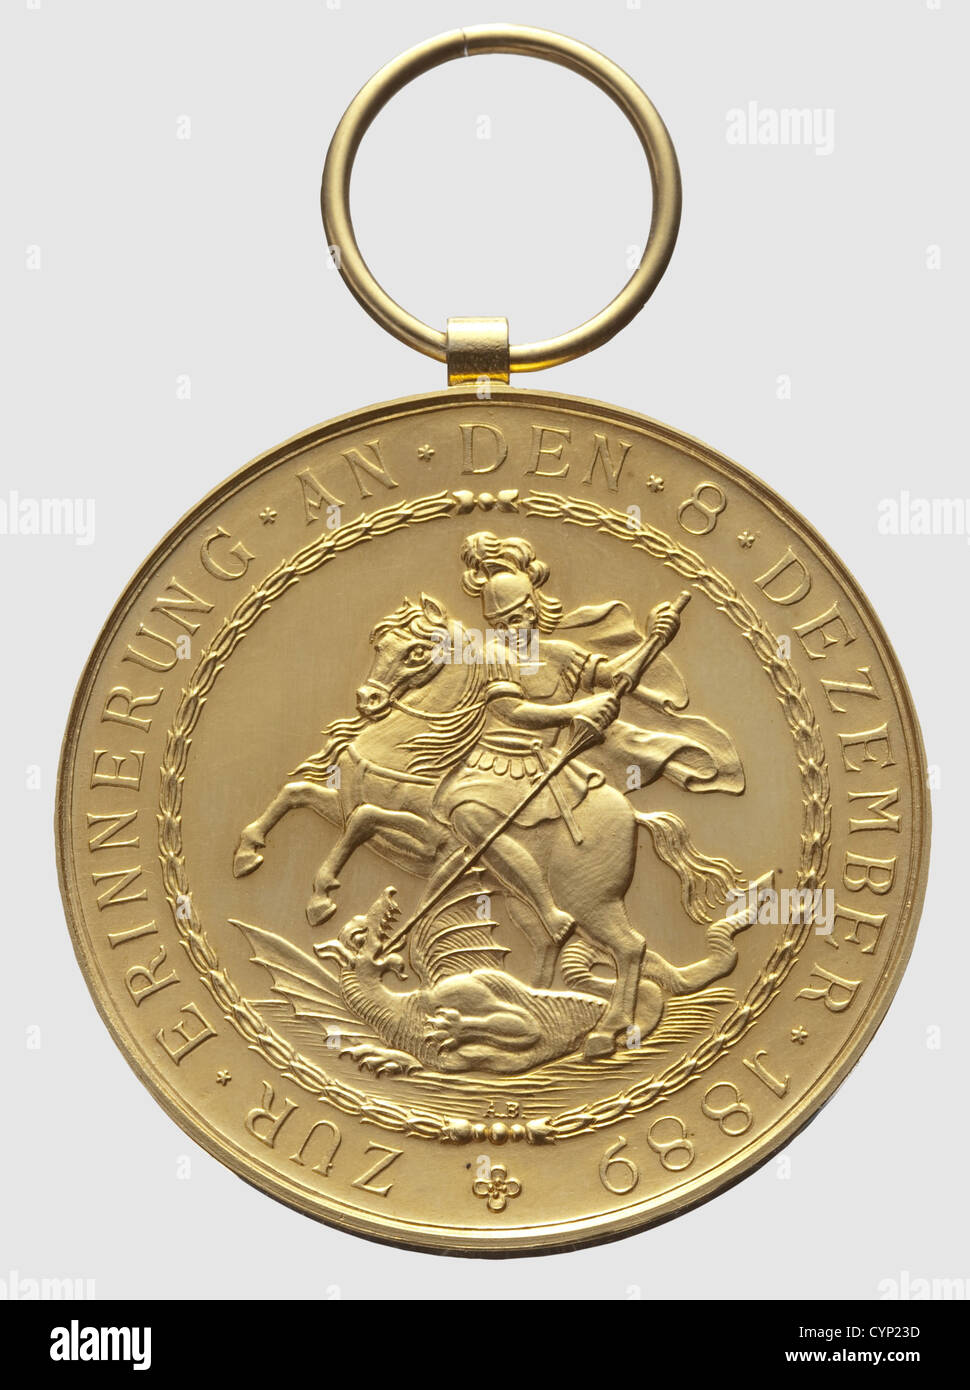 A Golden Medal of St. George, instituted by Prince Regent Leopold on 15 December 1889 in commemoration of the high - Stock Image